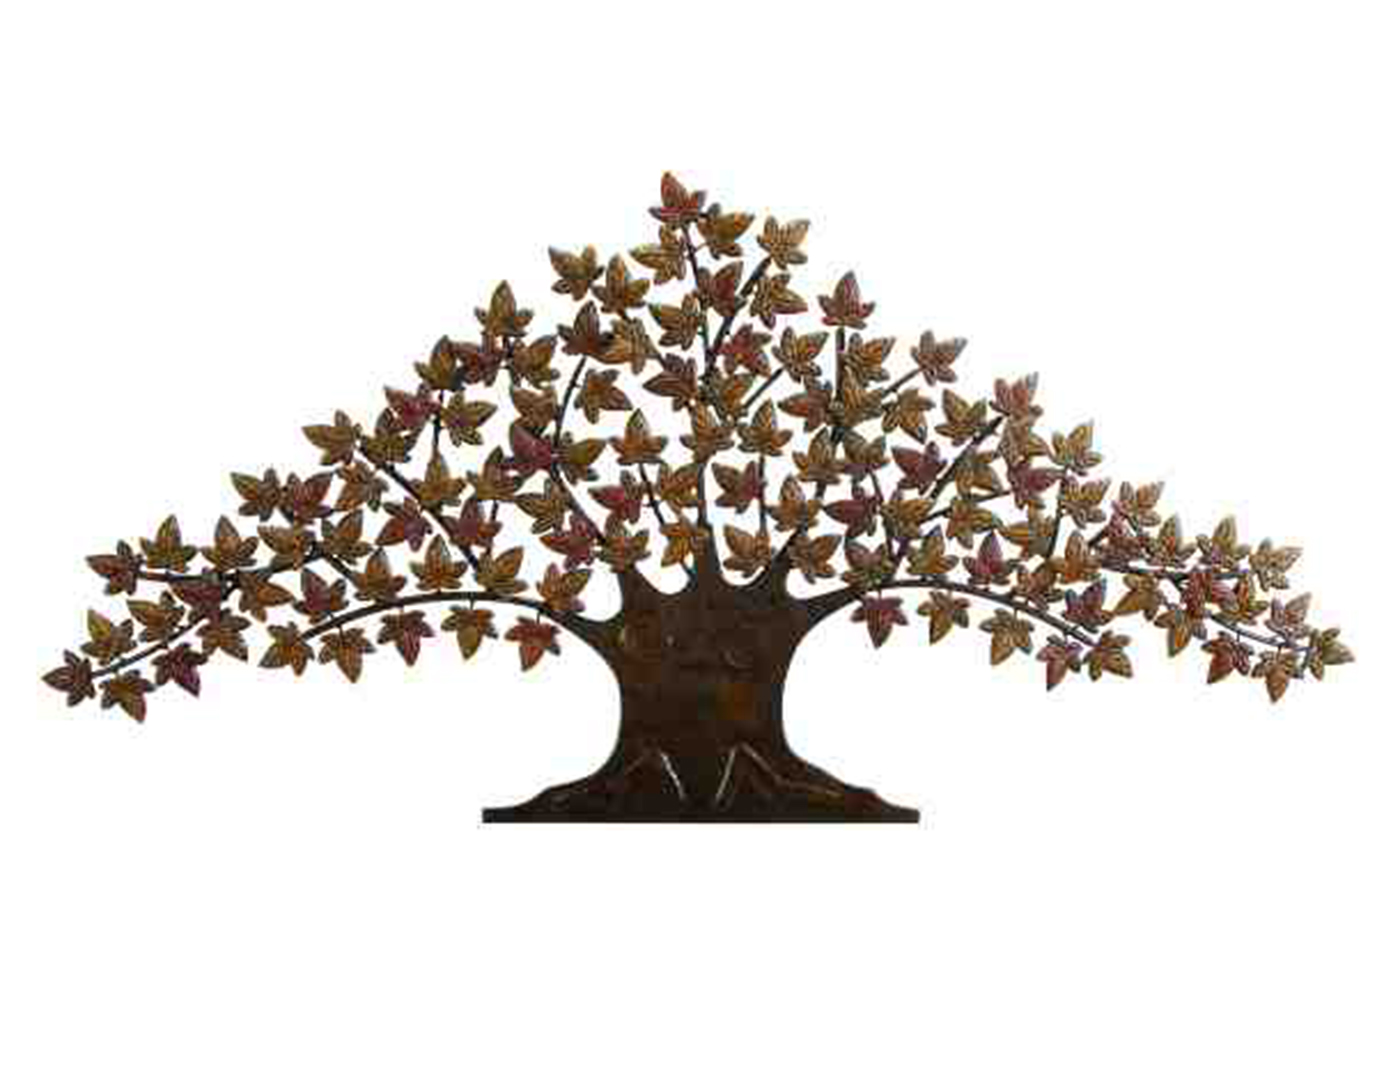 Metal Tree Wall Art Gallery: Decor & Accents